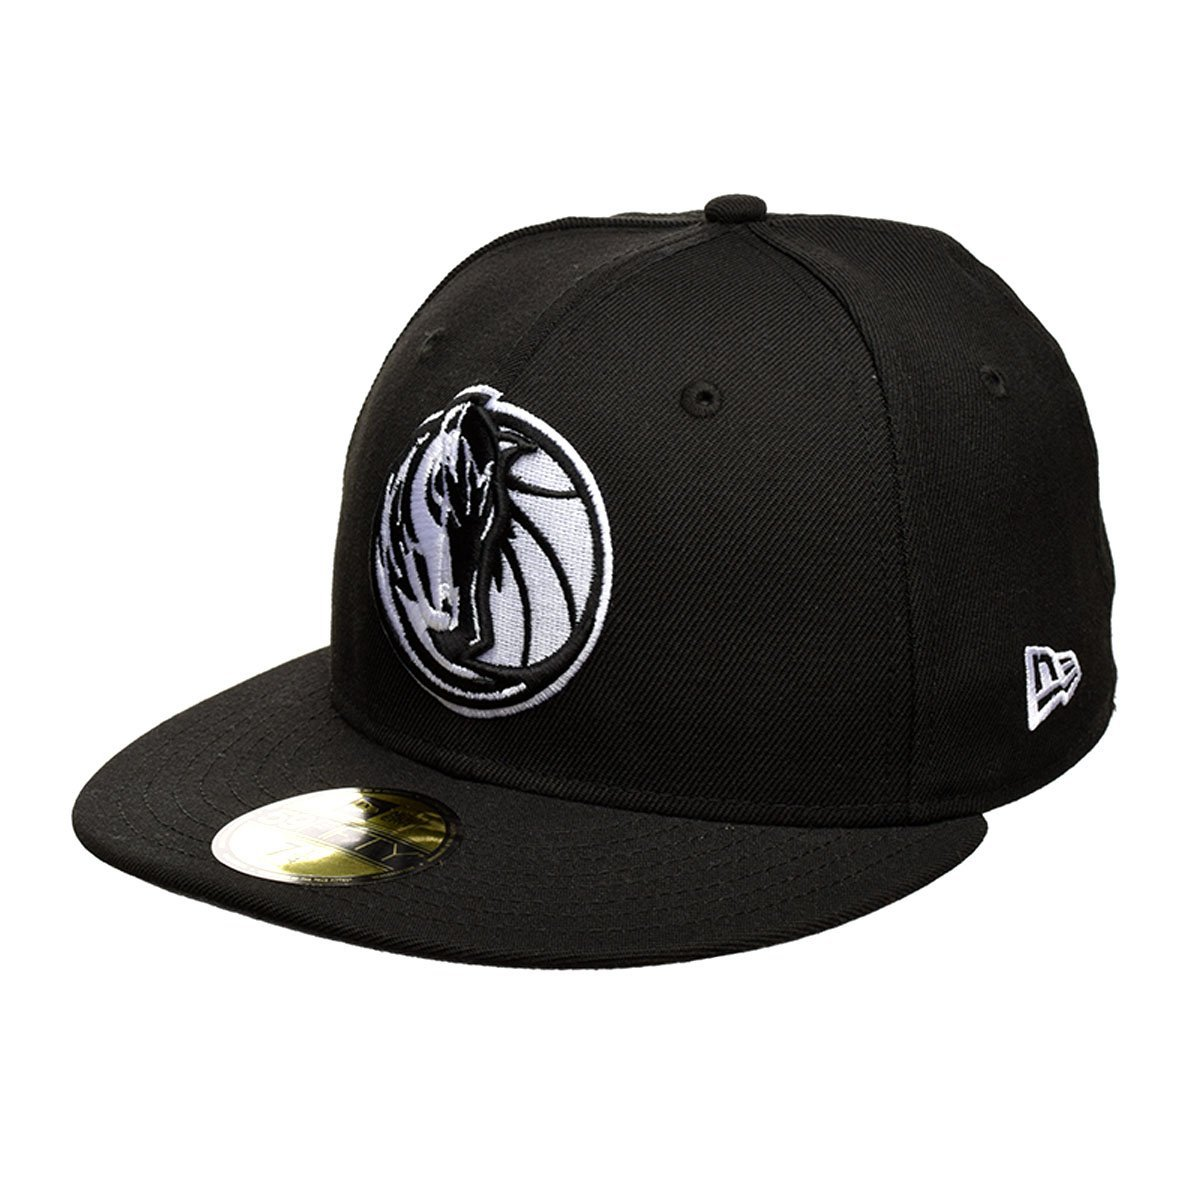 Get Quotations · New Era Dallas Mavericks White On Black 59Fifty Fitted Hat  (Black) 706de4de8